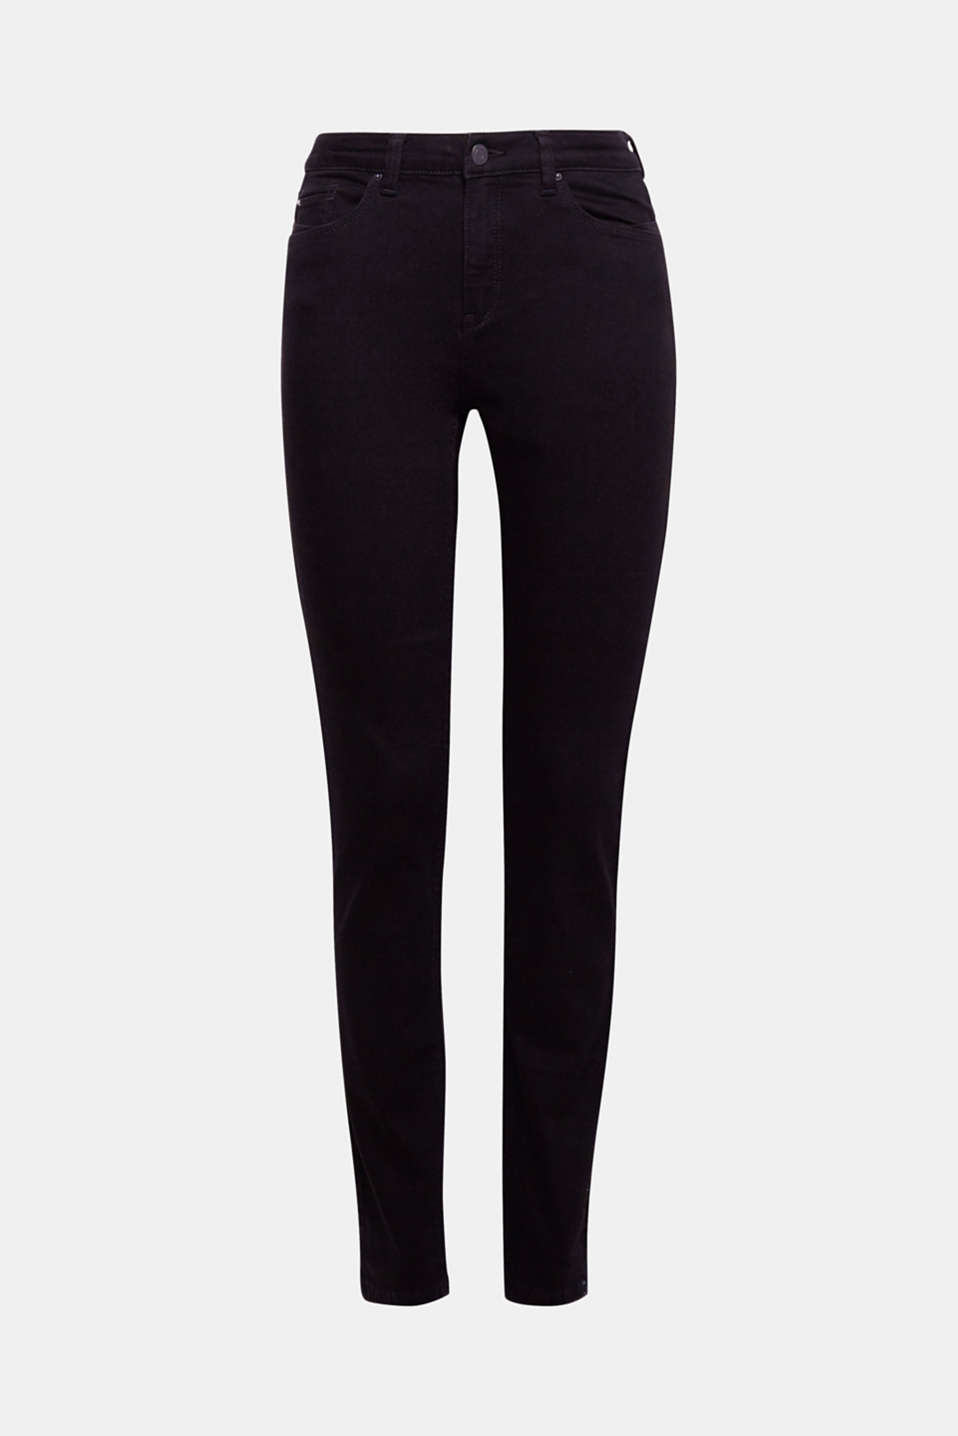 We love these black stretch jeans because they are so versatile to mix and match and are very supple thanks to the percentage of stretch.